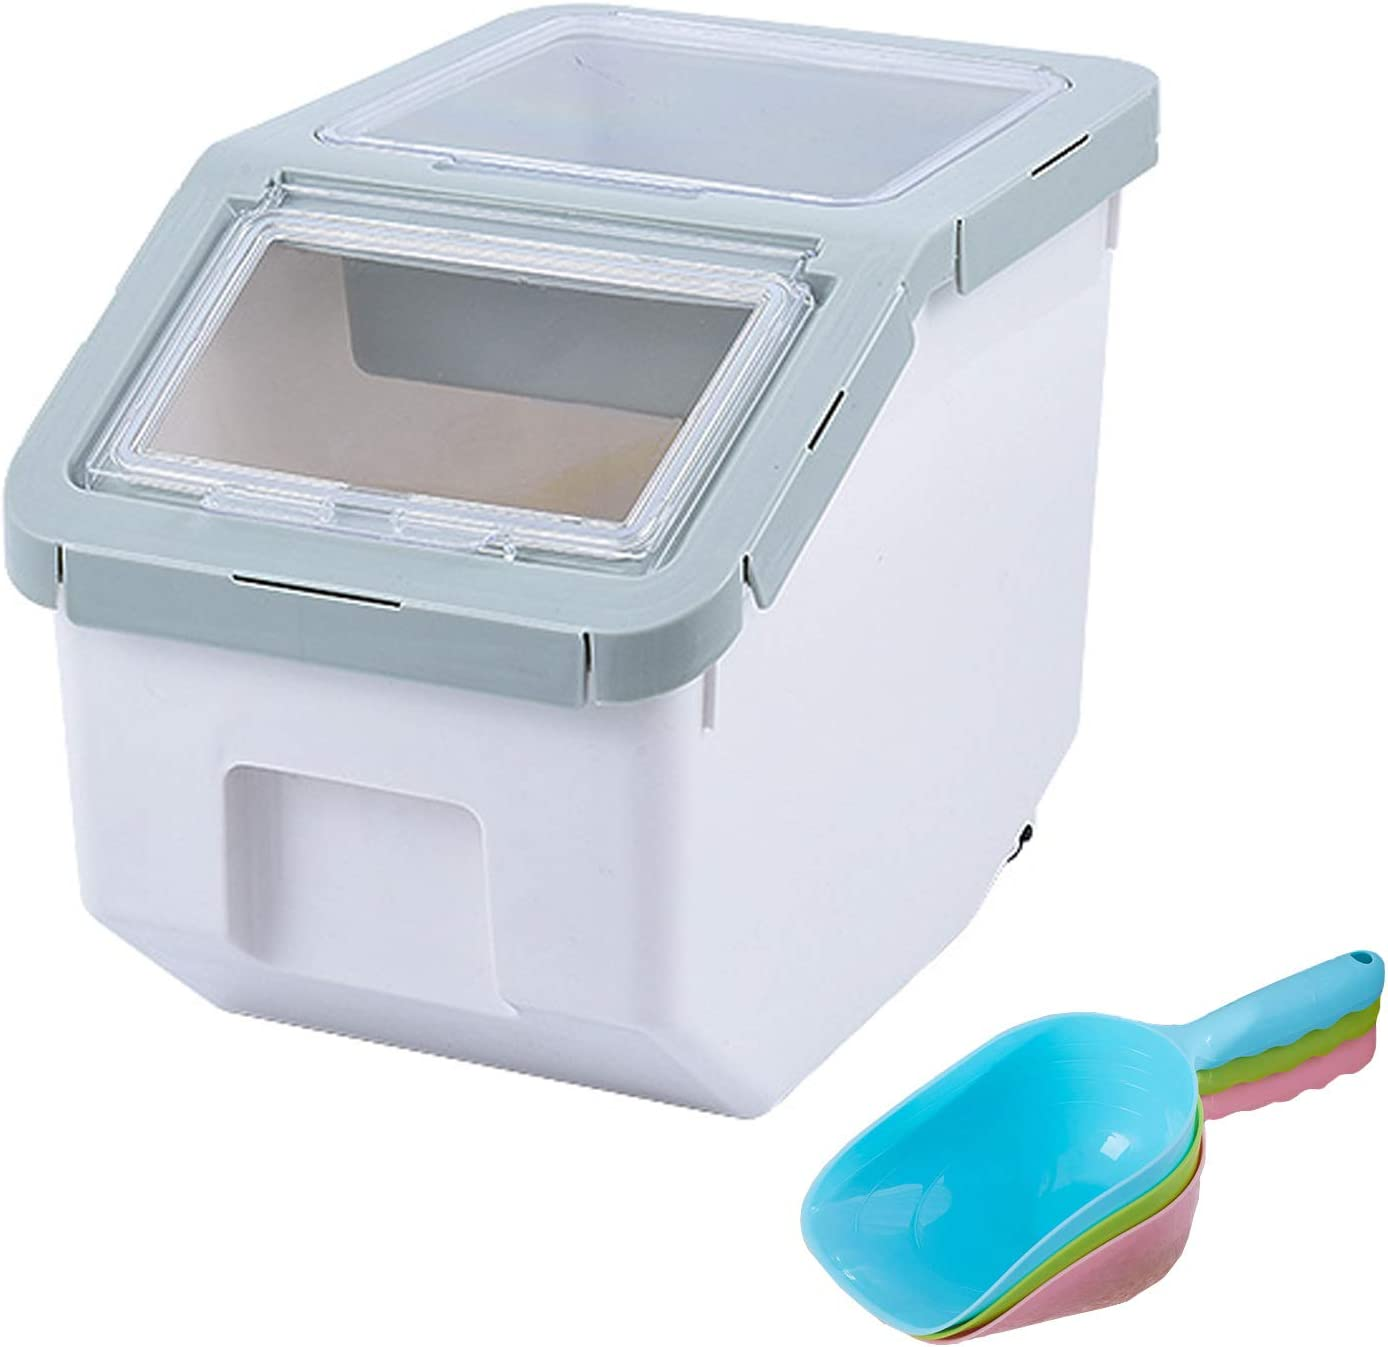 AnRui Rice Container Storage Airtight Plastic Food Holder Dispenser Cereal Grain Organizer Box Pet Dog Cat Food Bin with Locking Lid, Measuring Cup, Scoop & Wheels, Green, Small